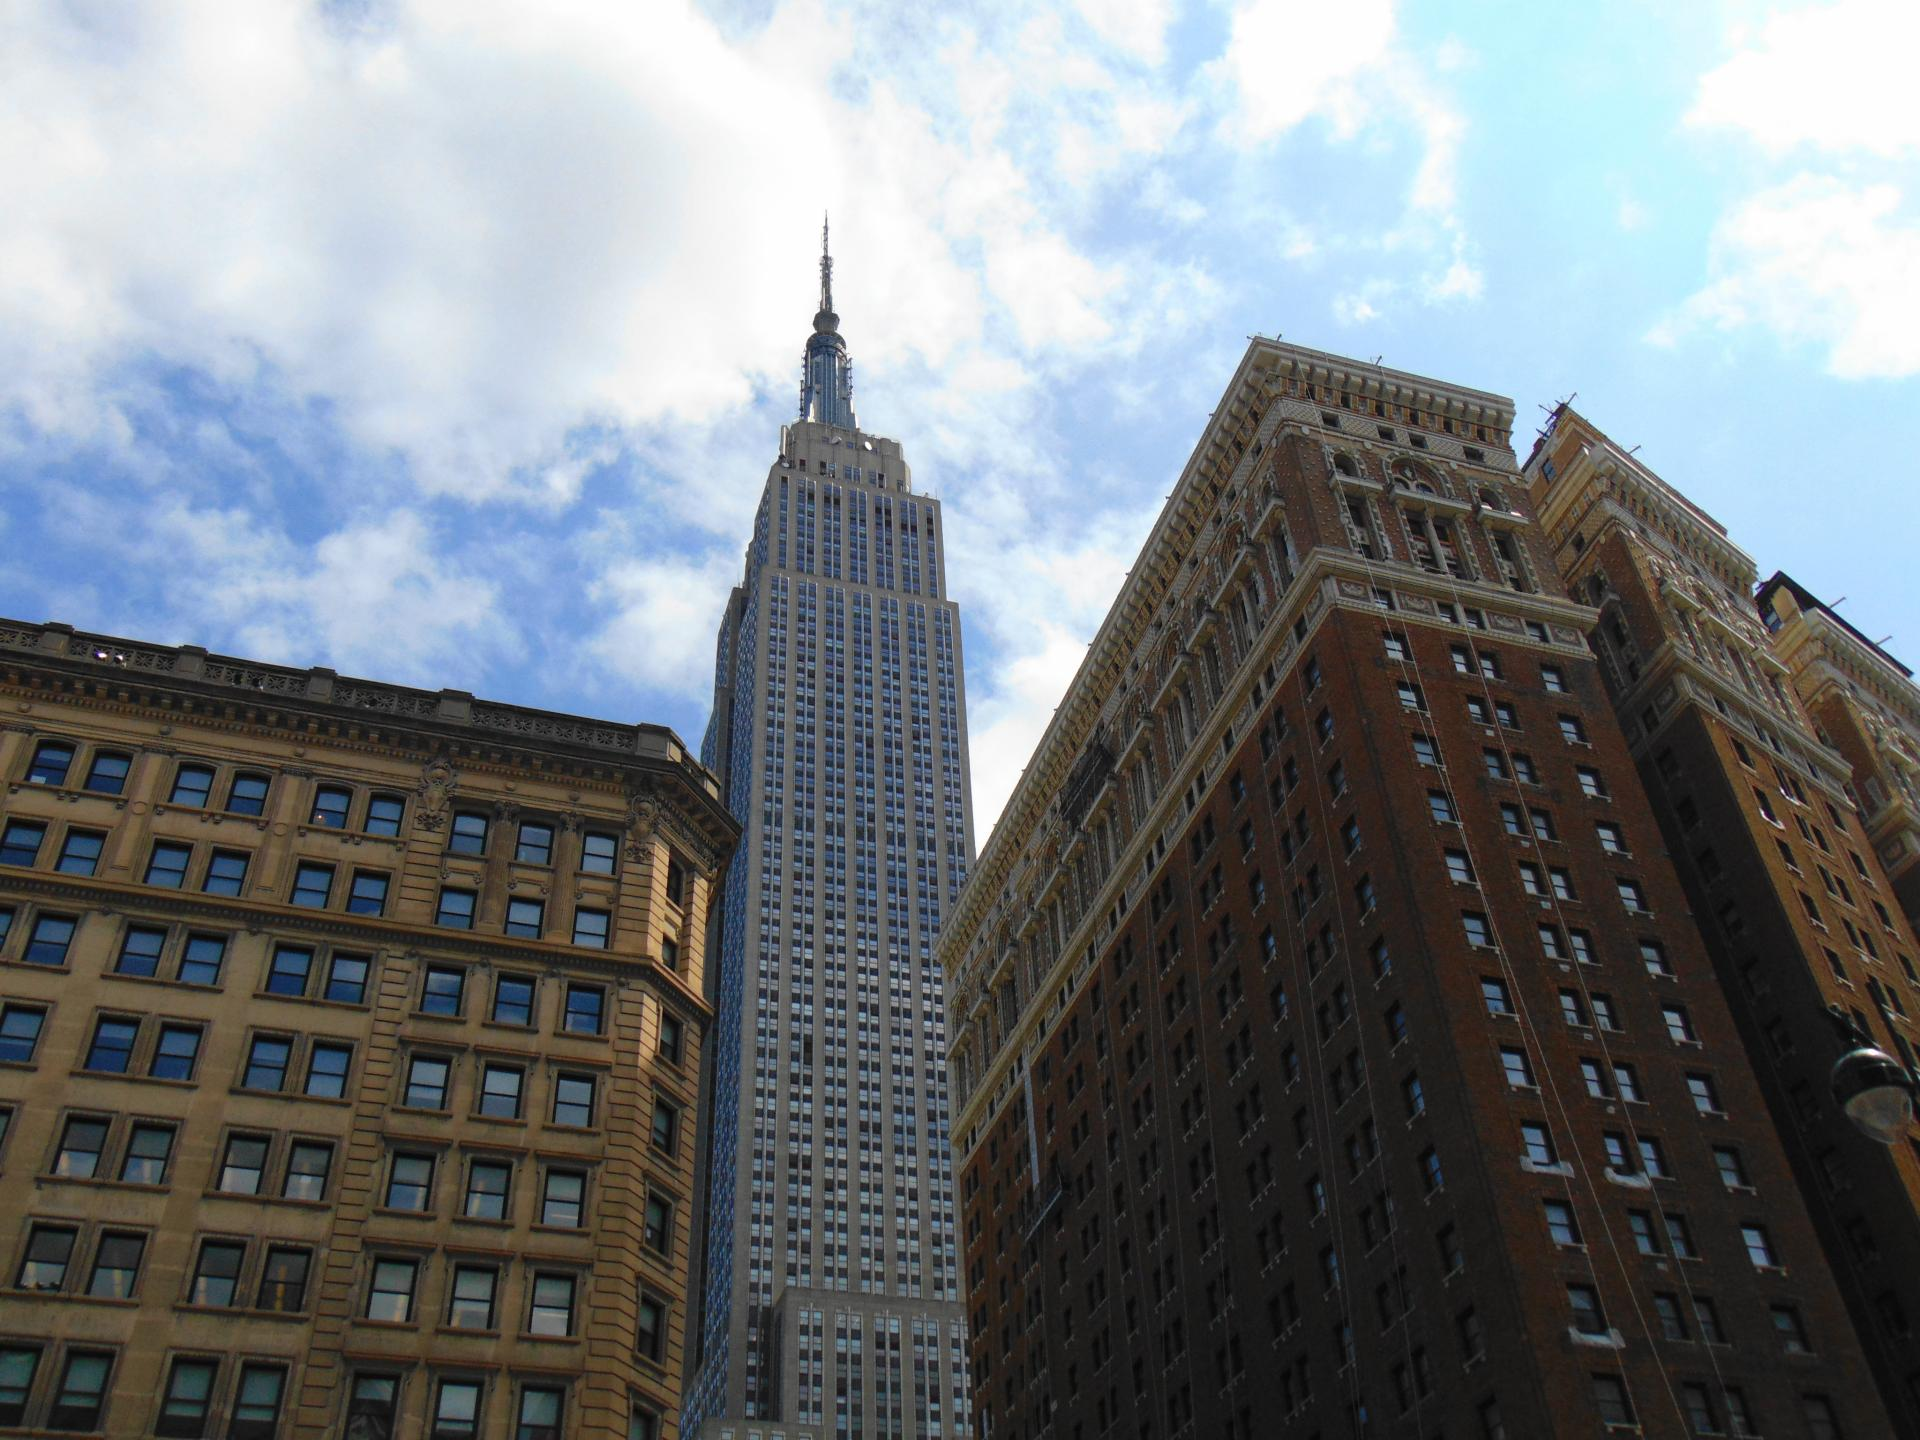 Empire State Building, фото с улицы